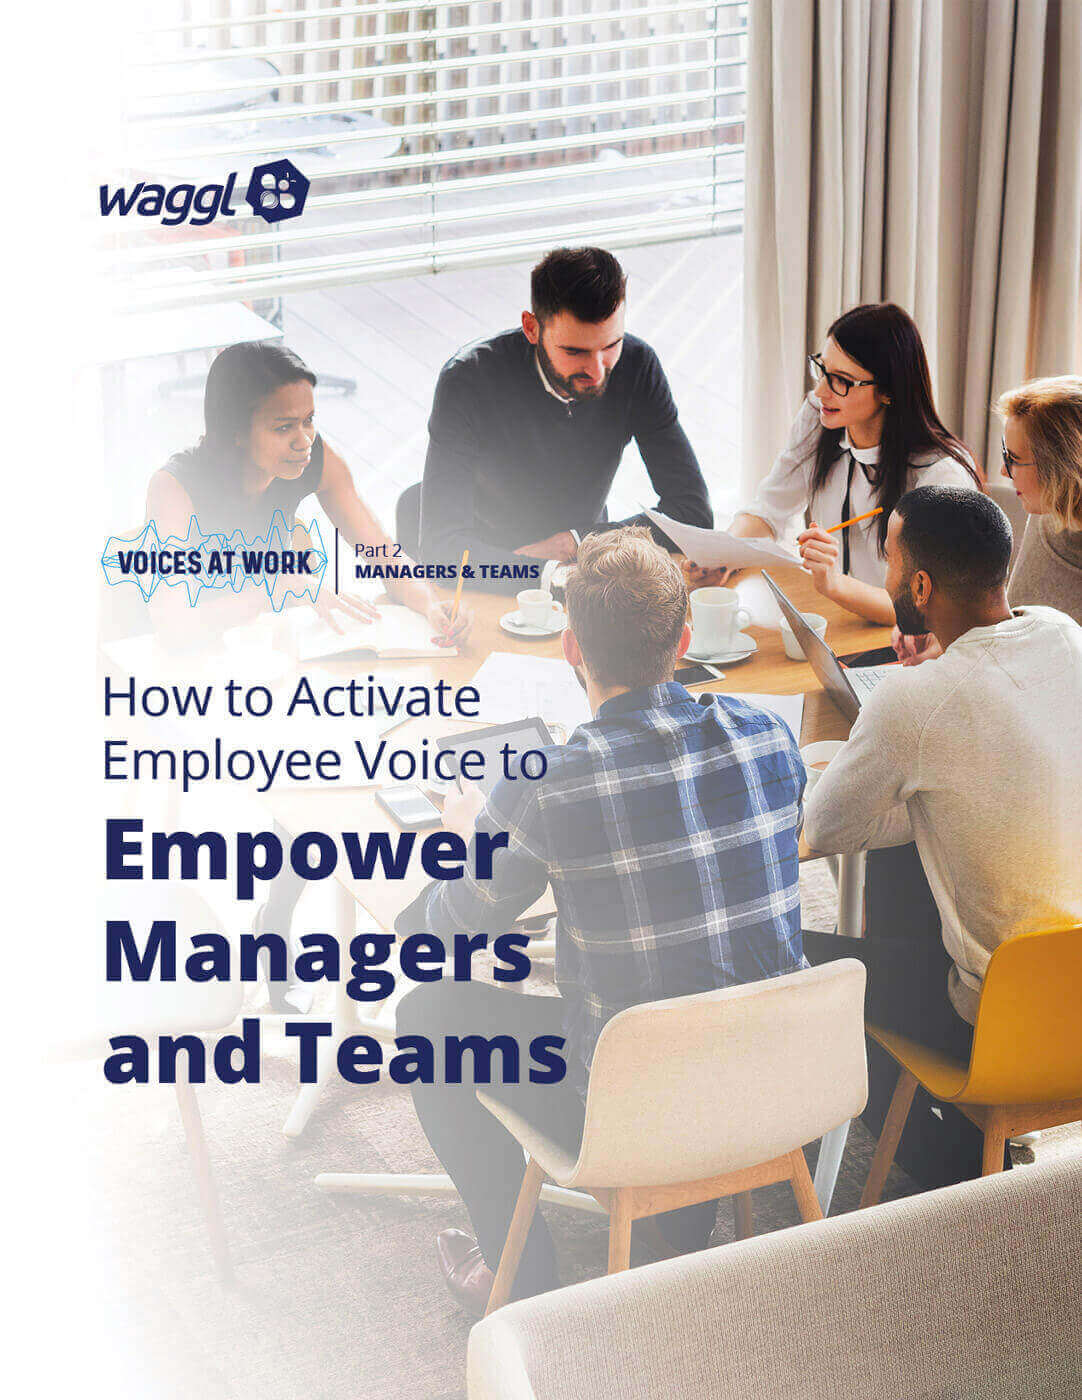 Empower Managers and Teams by Activating Employee Voice